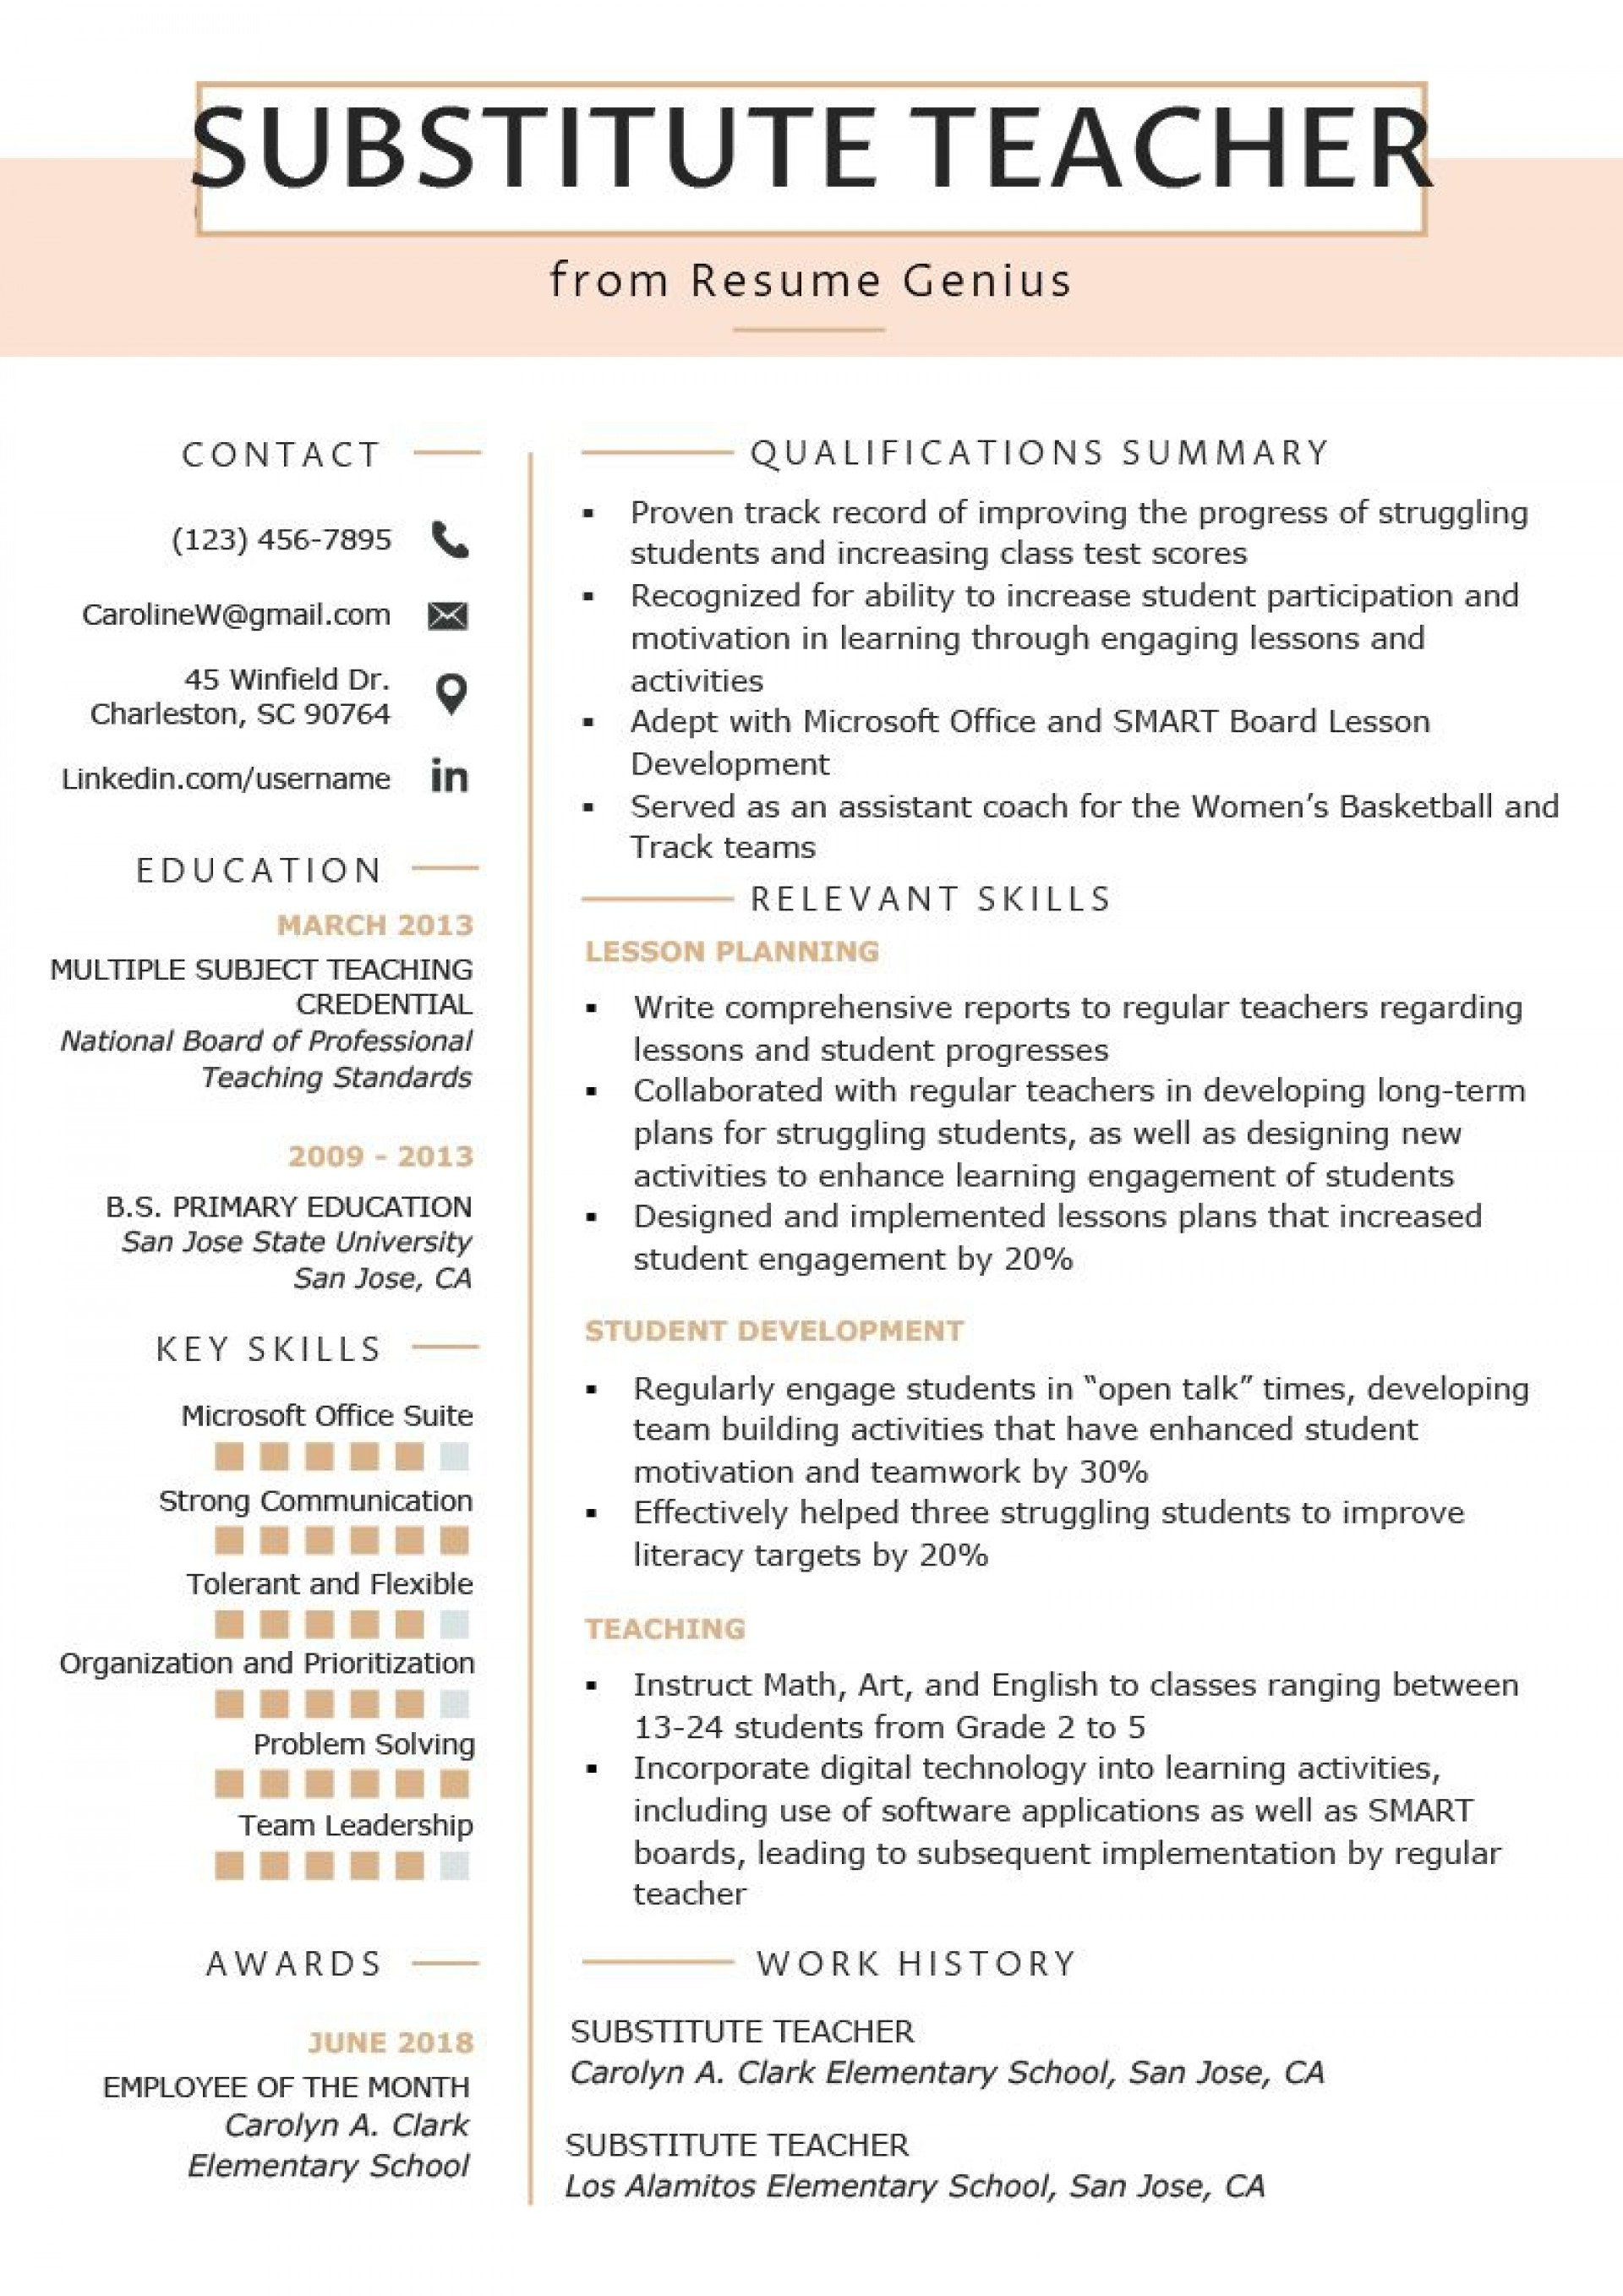 002 Incredible Resume Template For Teacher Picture  Free Download Australia Microsoft Word 20071920